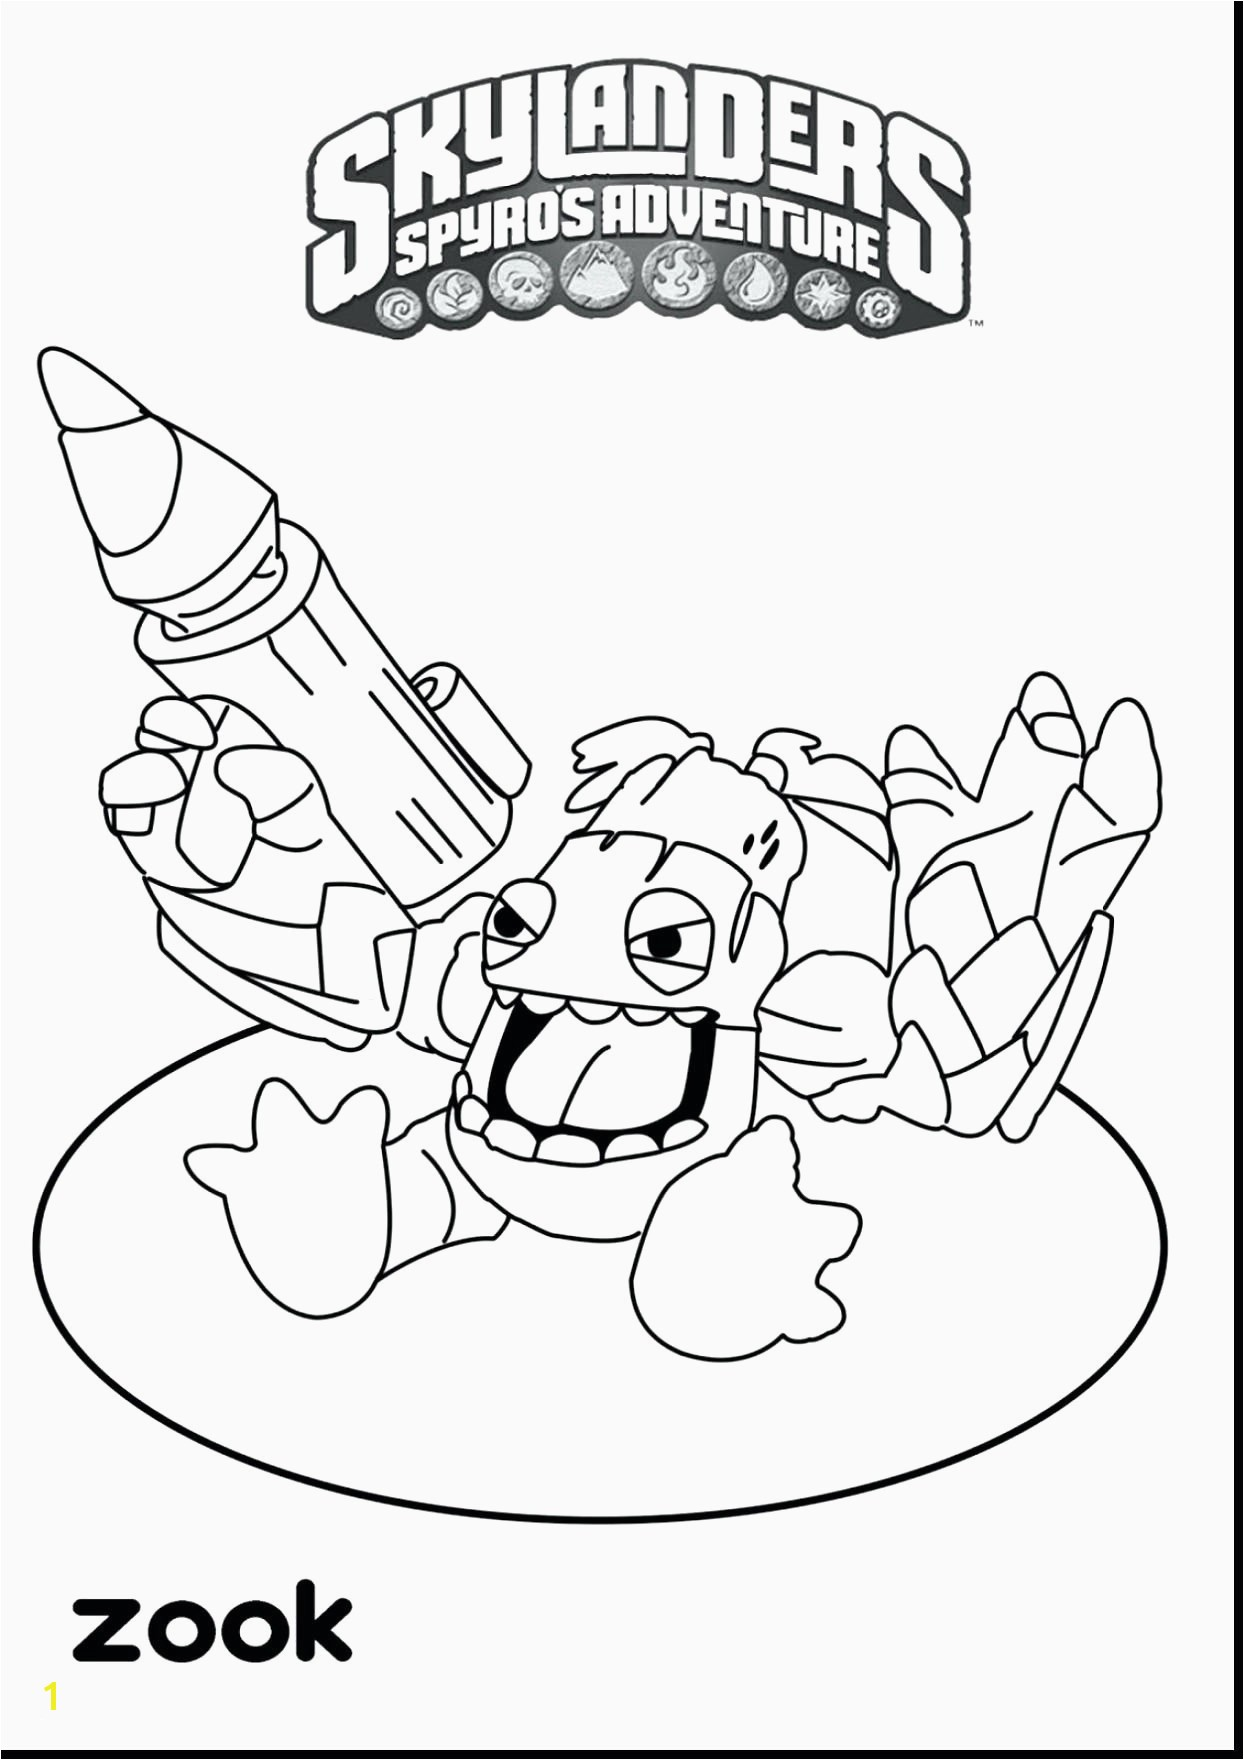 Washington Huskies Coloring Pages Best Ben 10 Coloring Pages Upgrade Beautiful Printing Coloring Book Image